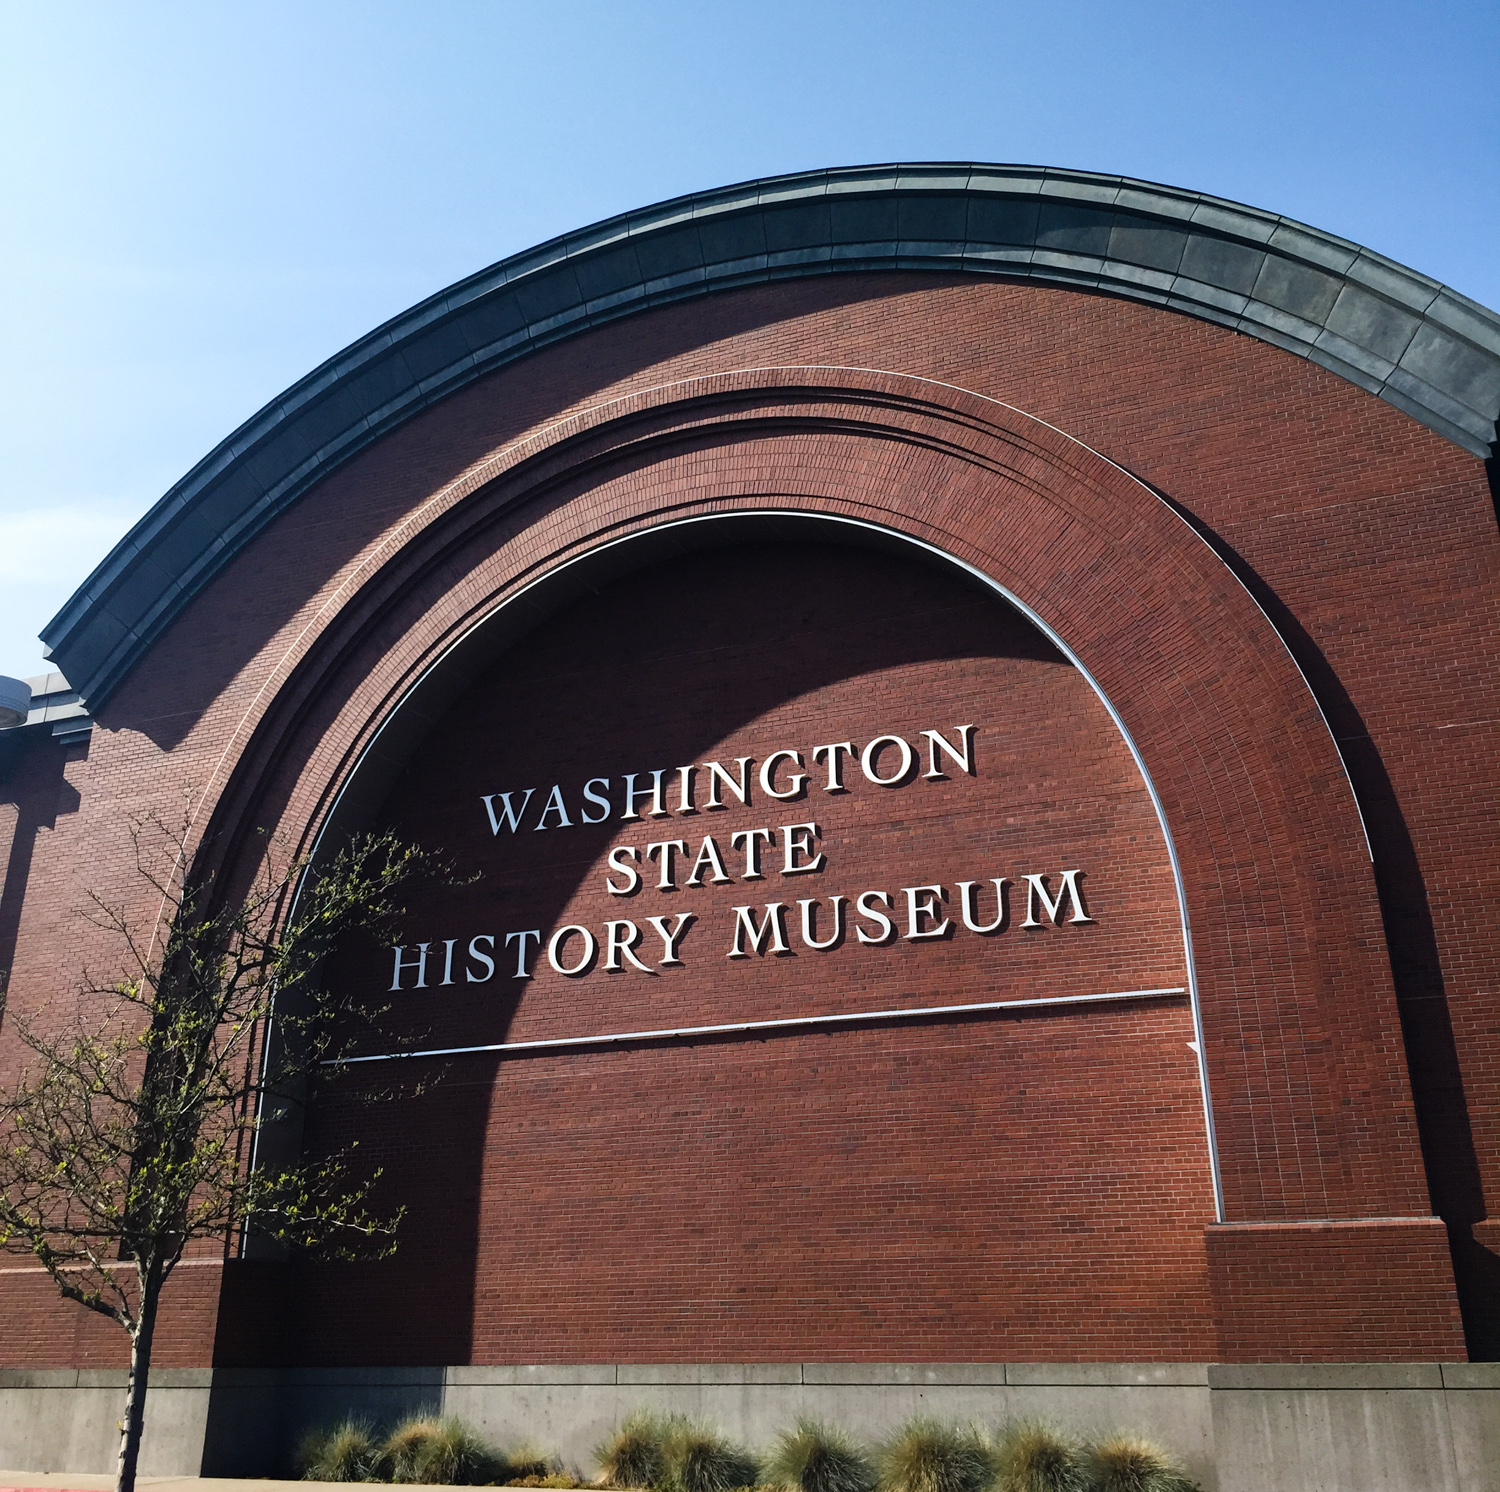 Washington State History Museum | Outdoor Adventure Action ...